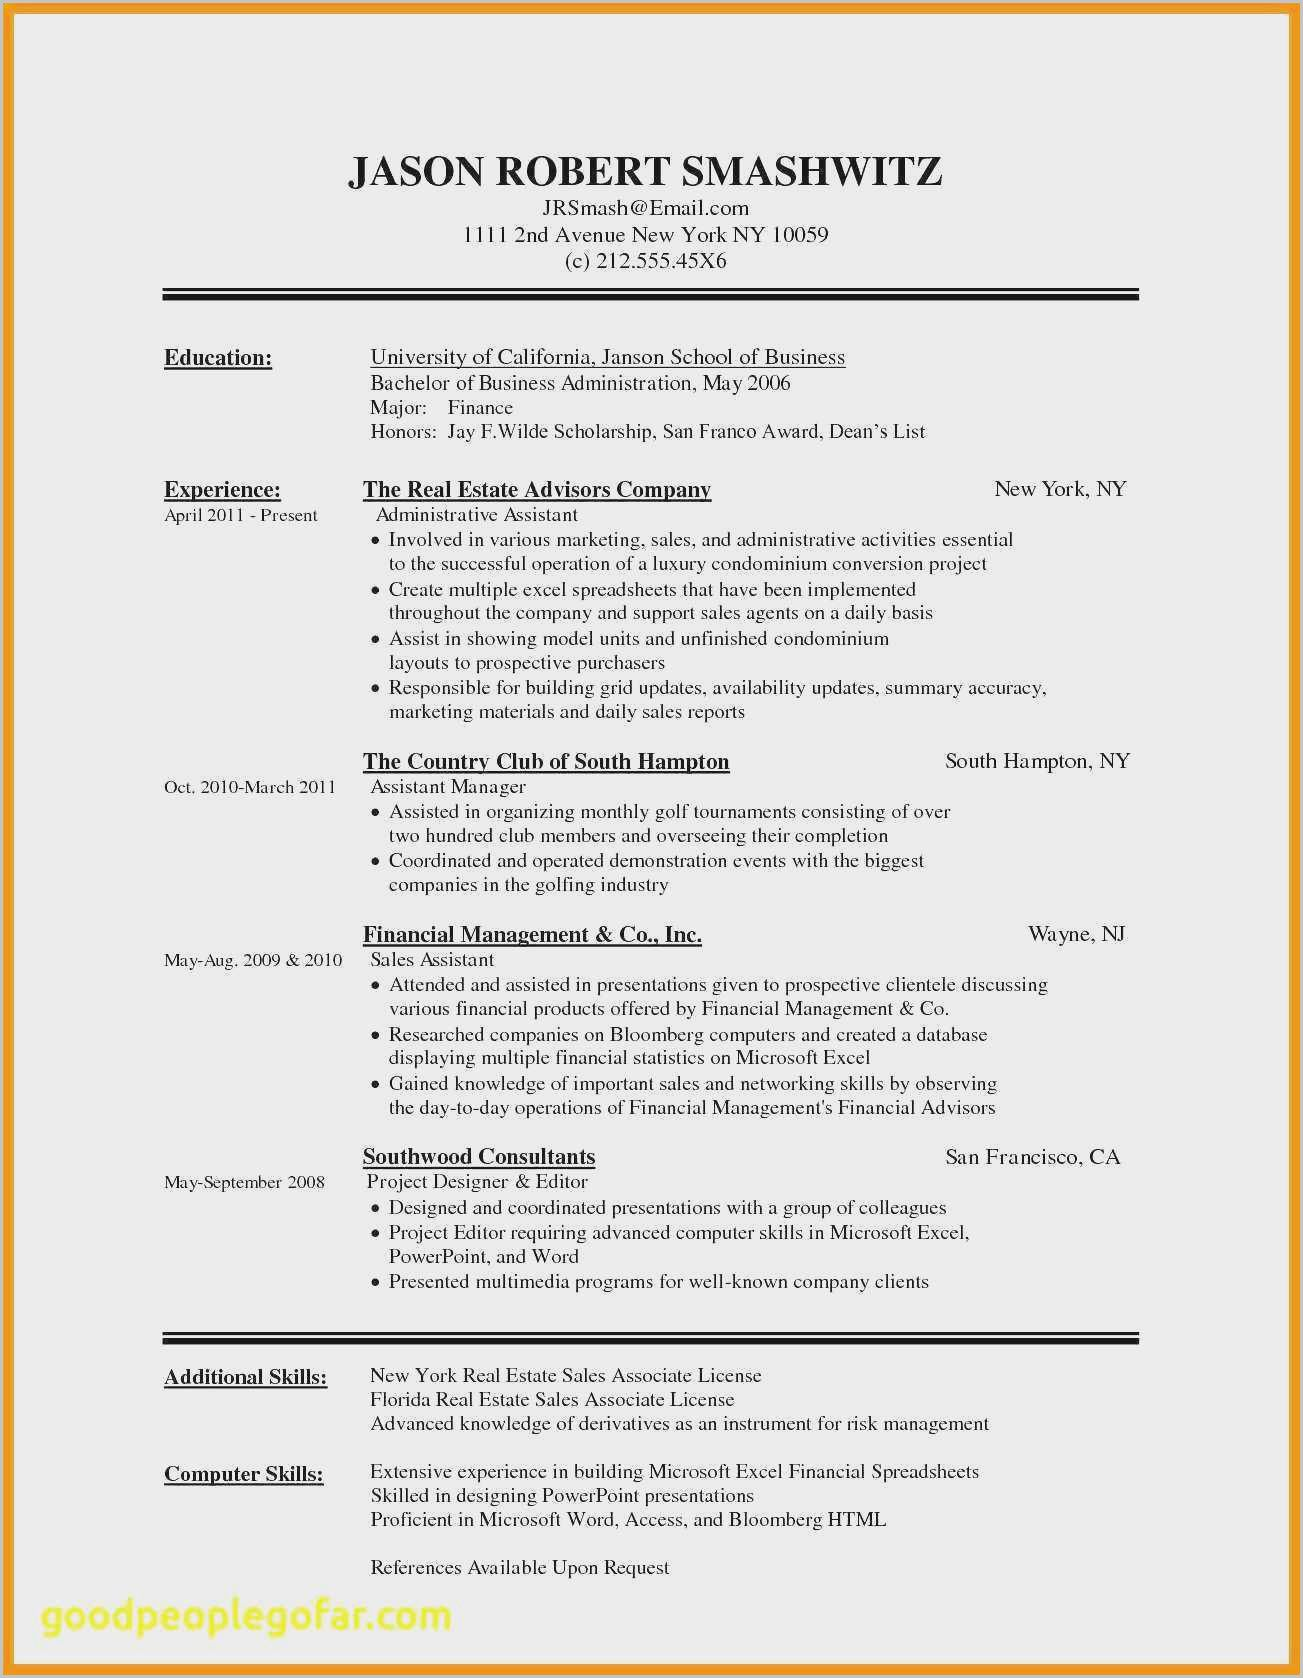 How To Find And Create A Resume Template In Microsoft Word